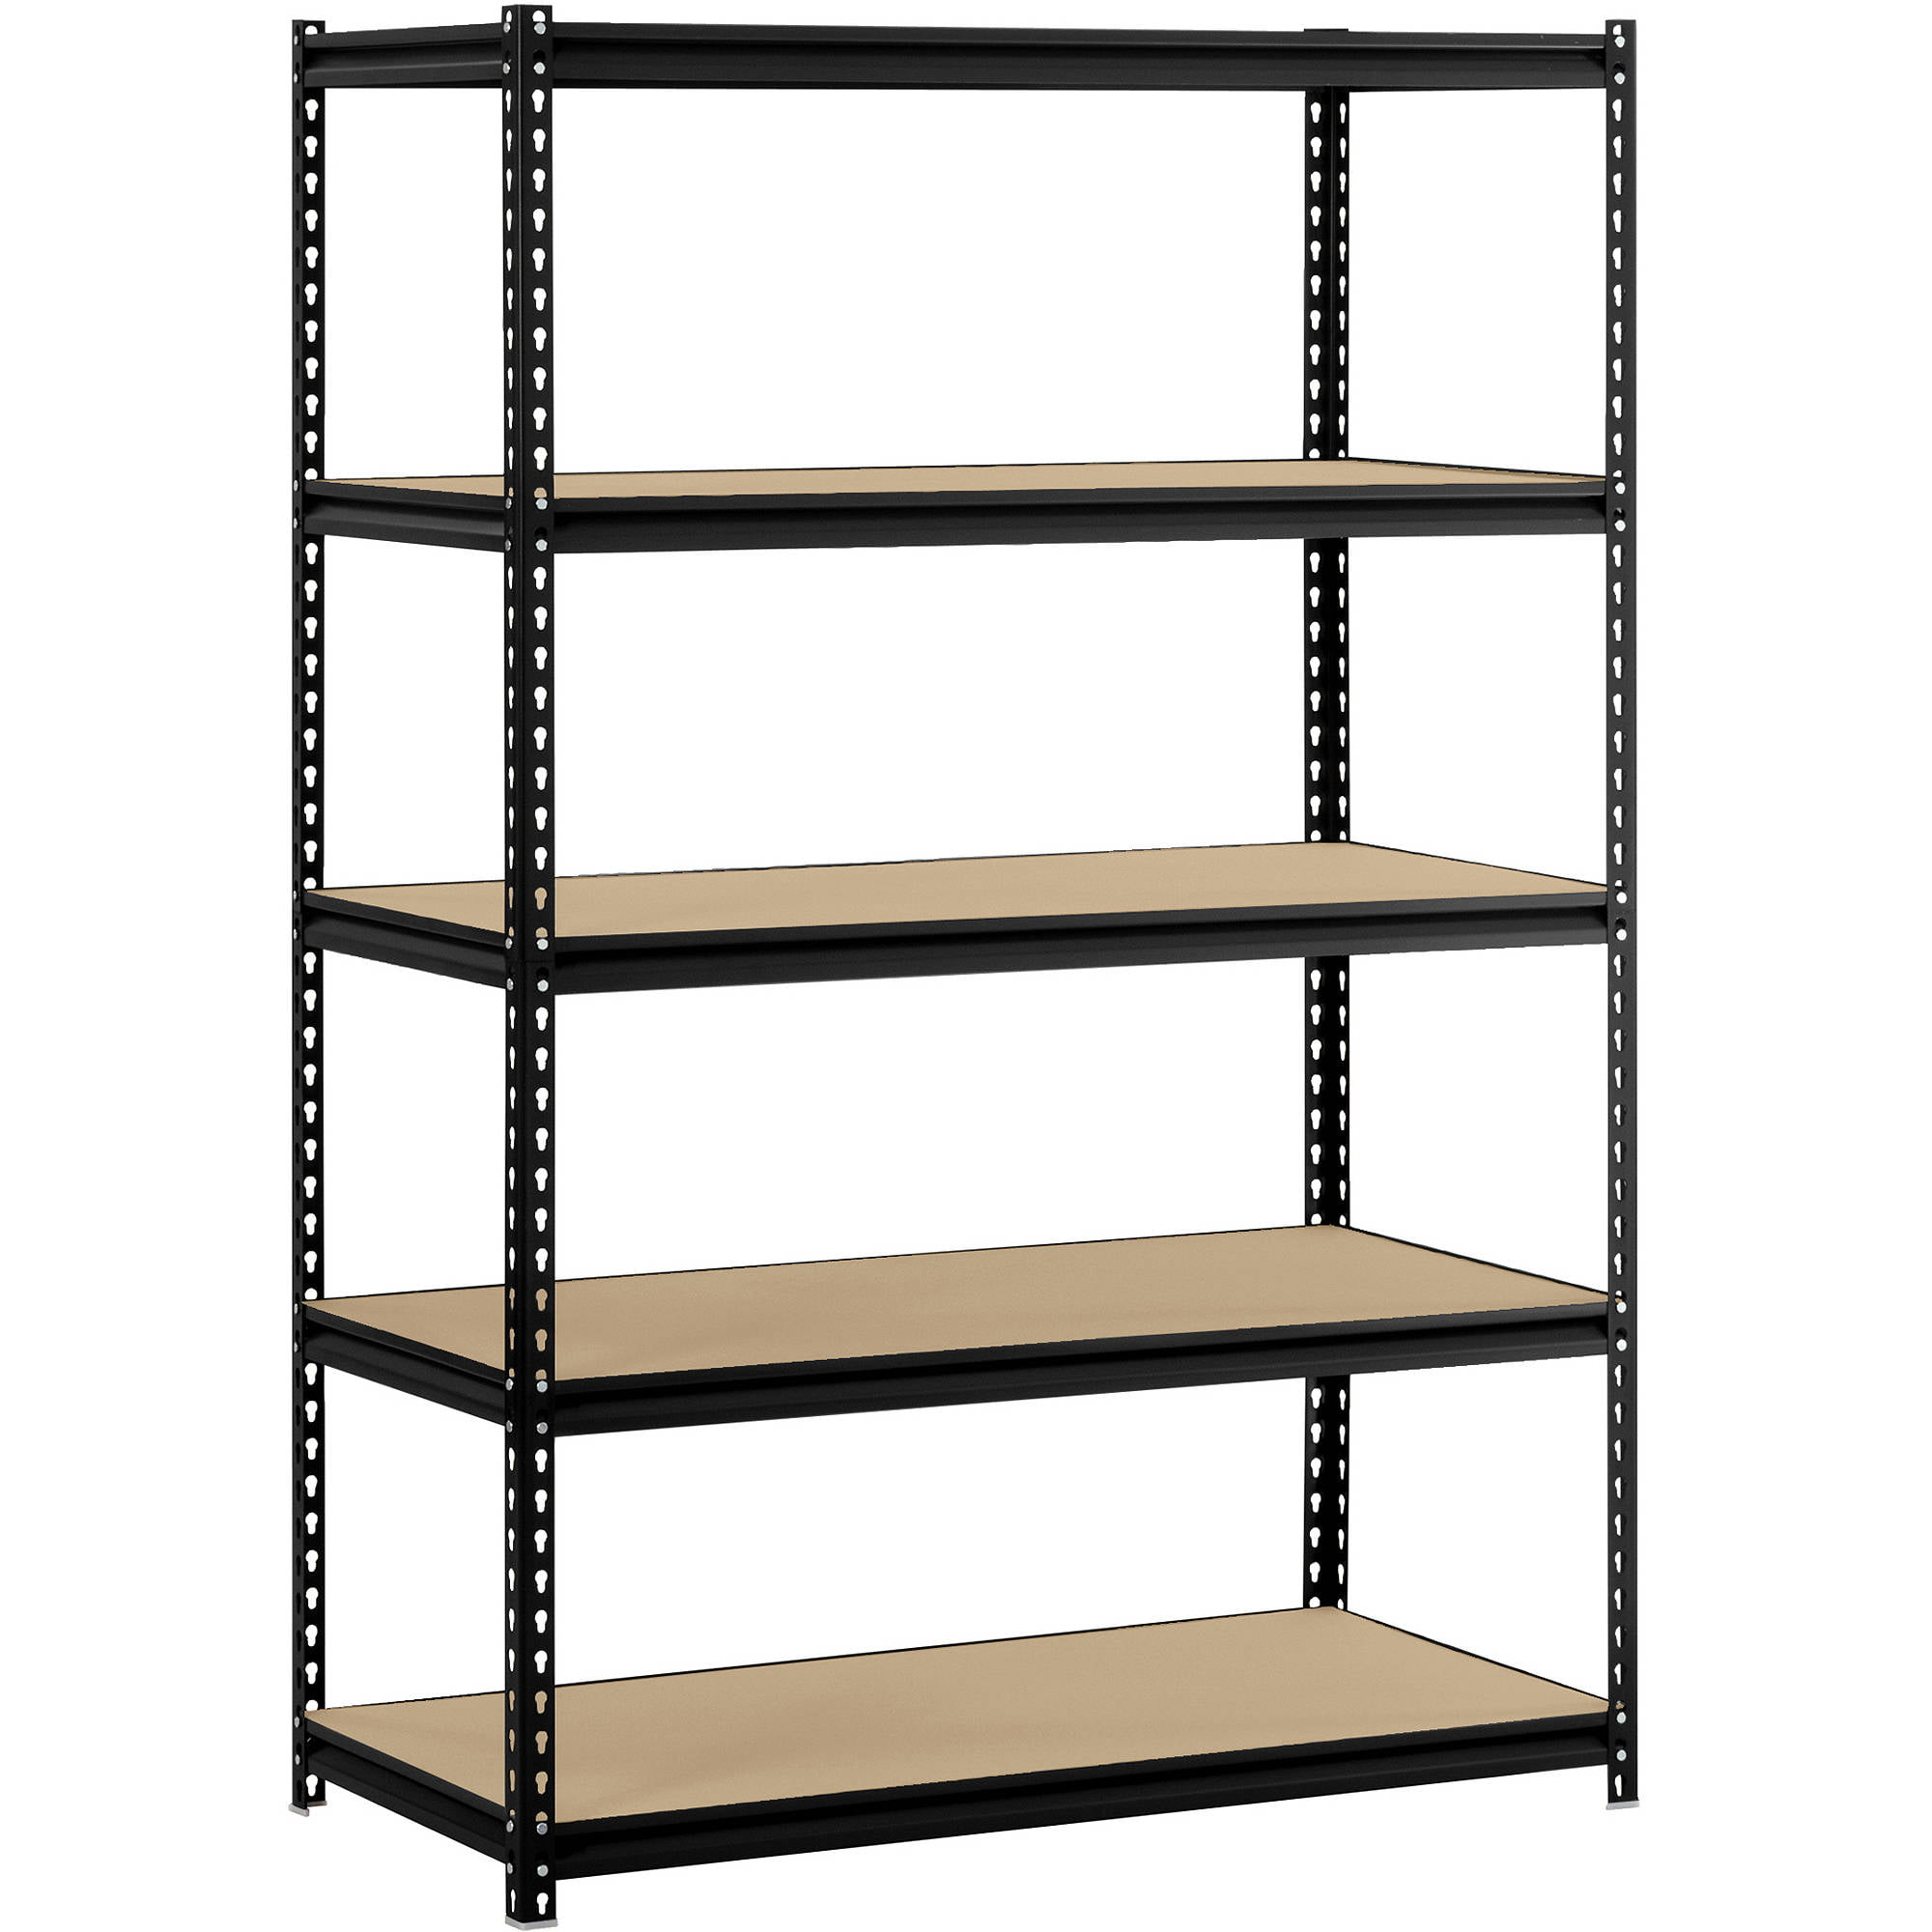 Edsal 48 w x 24 d x 72 h 5 shelf steel shelving value for Off the shelf cabinets